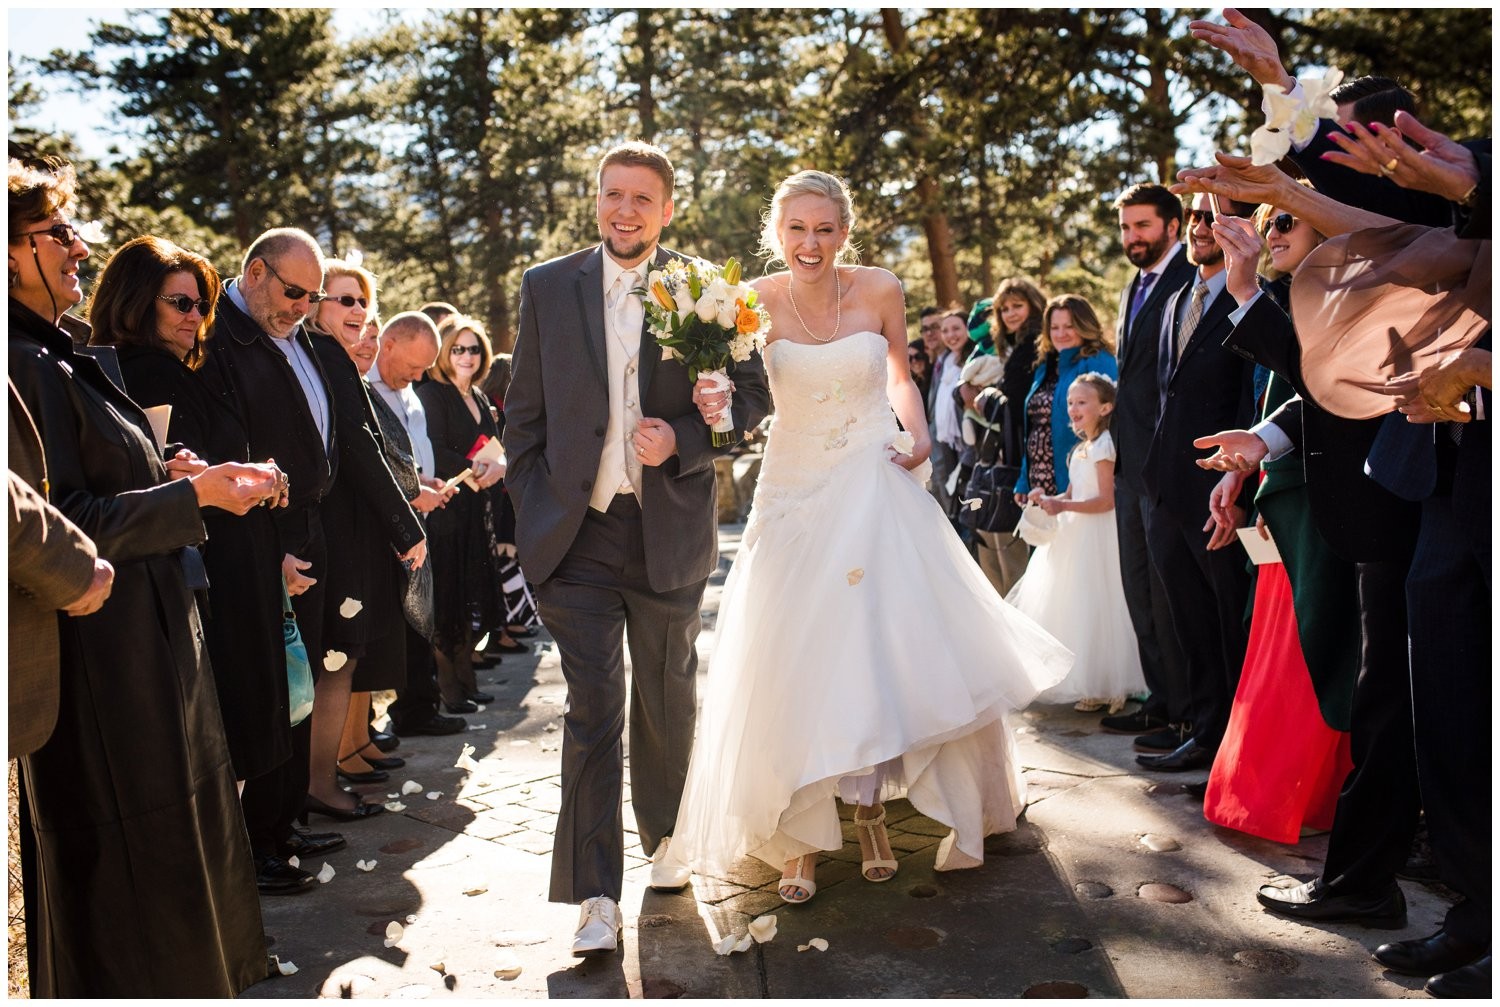 Bride and groom exit sunny mountain ceremony